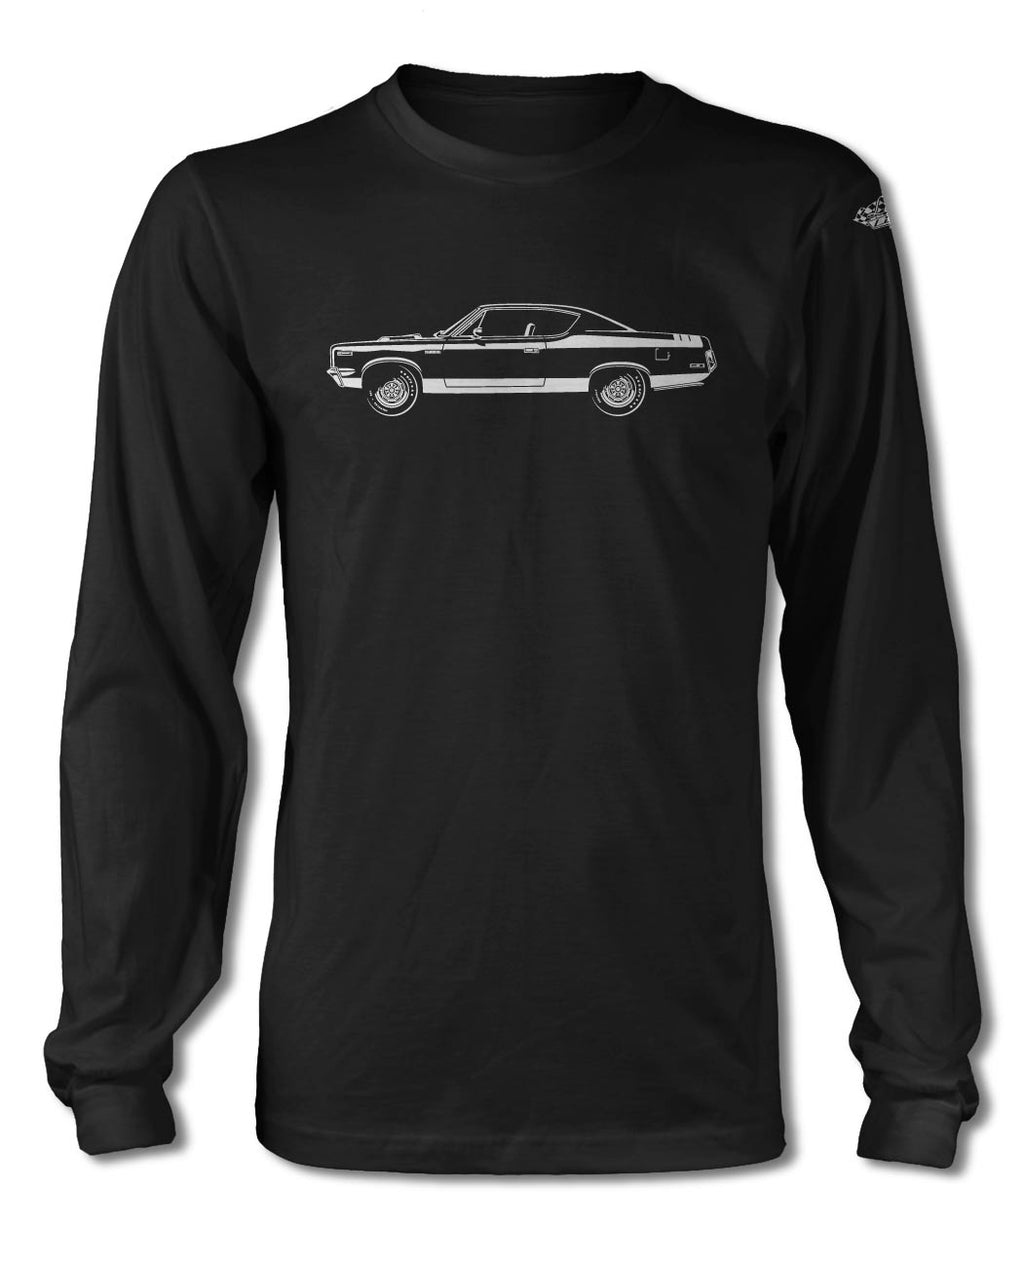 1970 AMC Rebel The Machine Coupe Stripes T-Shirt - Long Sleeves - Side View